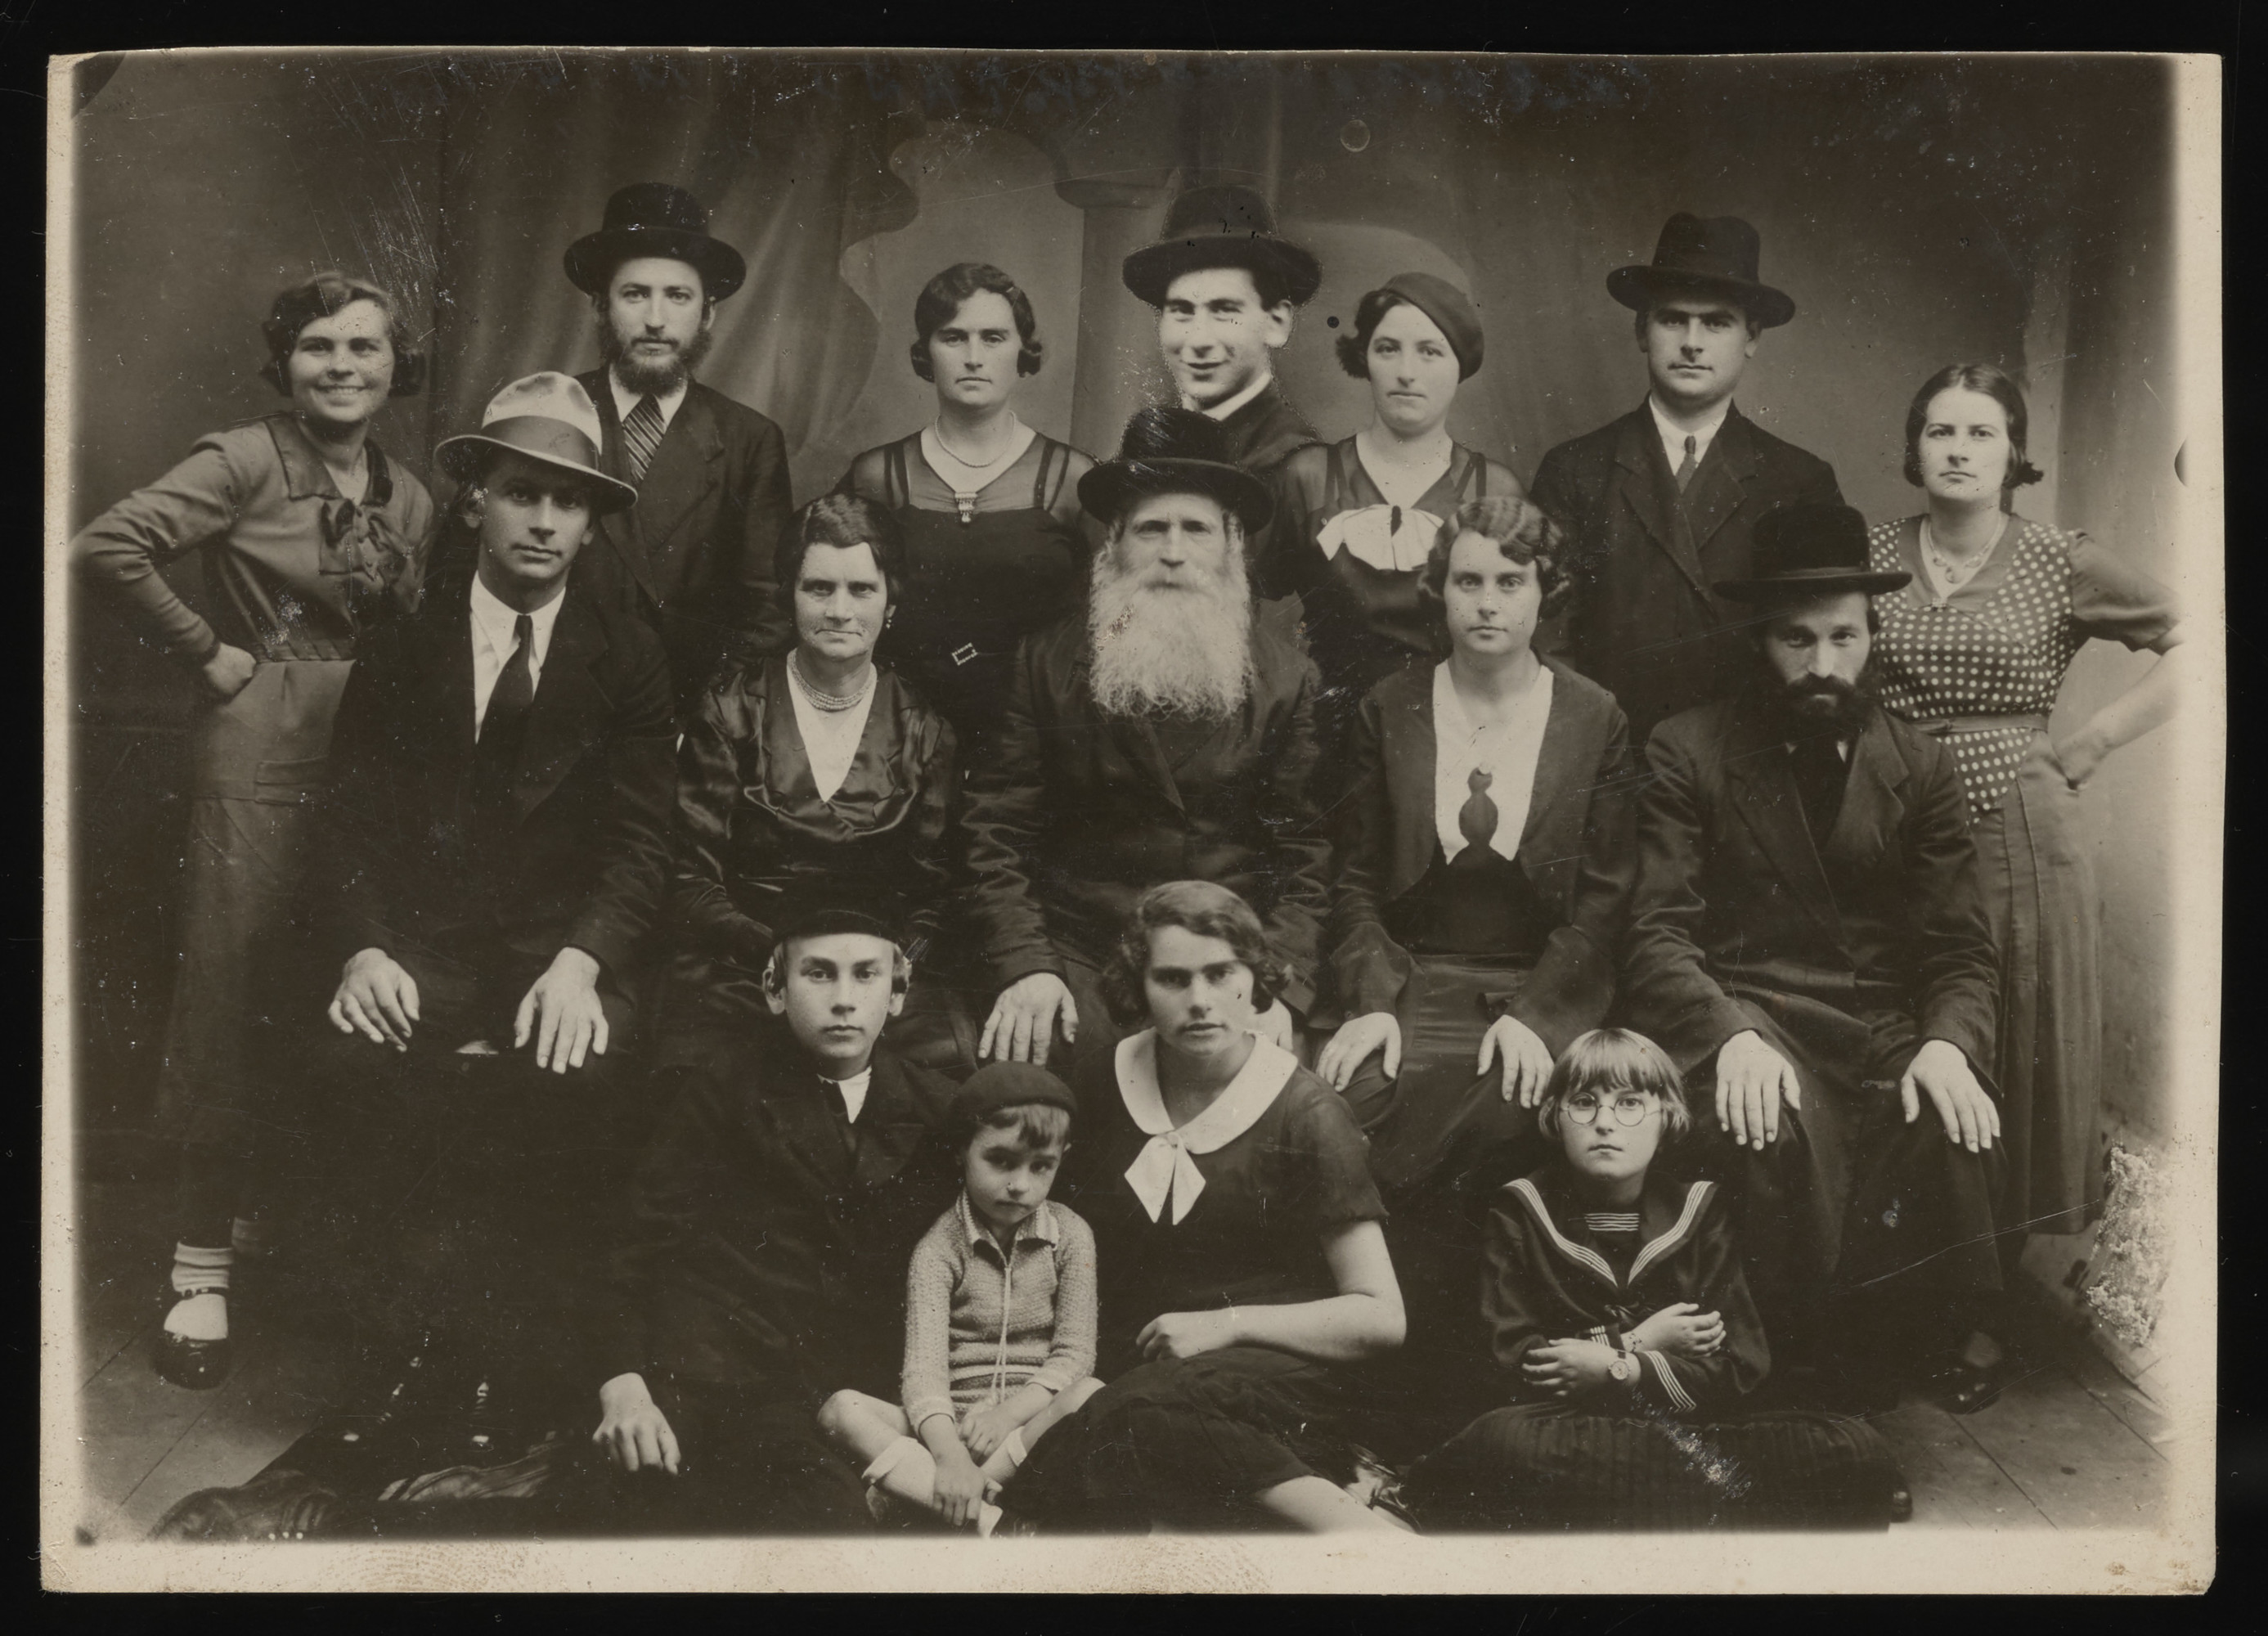 Studio portrait of the Saleschütz family taken during the visit of the older son, Avrum, from the United States.  Pictured in the front row from left to right are: Naftali, Shulem and Rachel Saleschütz; and Shaindel Weinstein.  In the middle row from left to right are: Avrum,  Esther and Isak Saleschütz; and Bluma Gela and Reuven Weinstein. Standing in the back row from left to right are: Matla Saleschütz, Shaye David and Malcia Lische; David Saleschütz; Hannah and Leibush Saleschütz; and Liba Saleschütz.  David's picture was pasted in because he was living in Palestine.